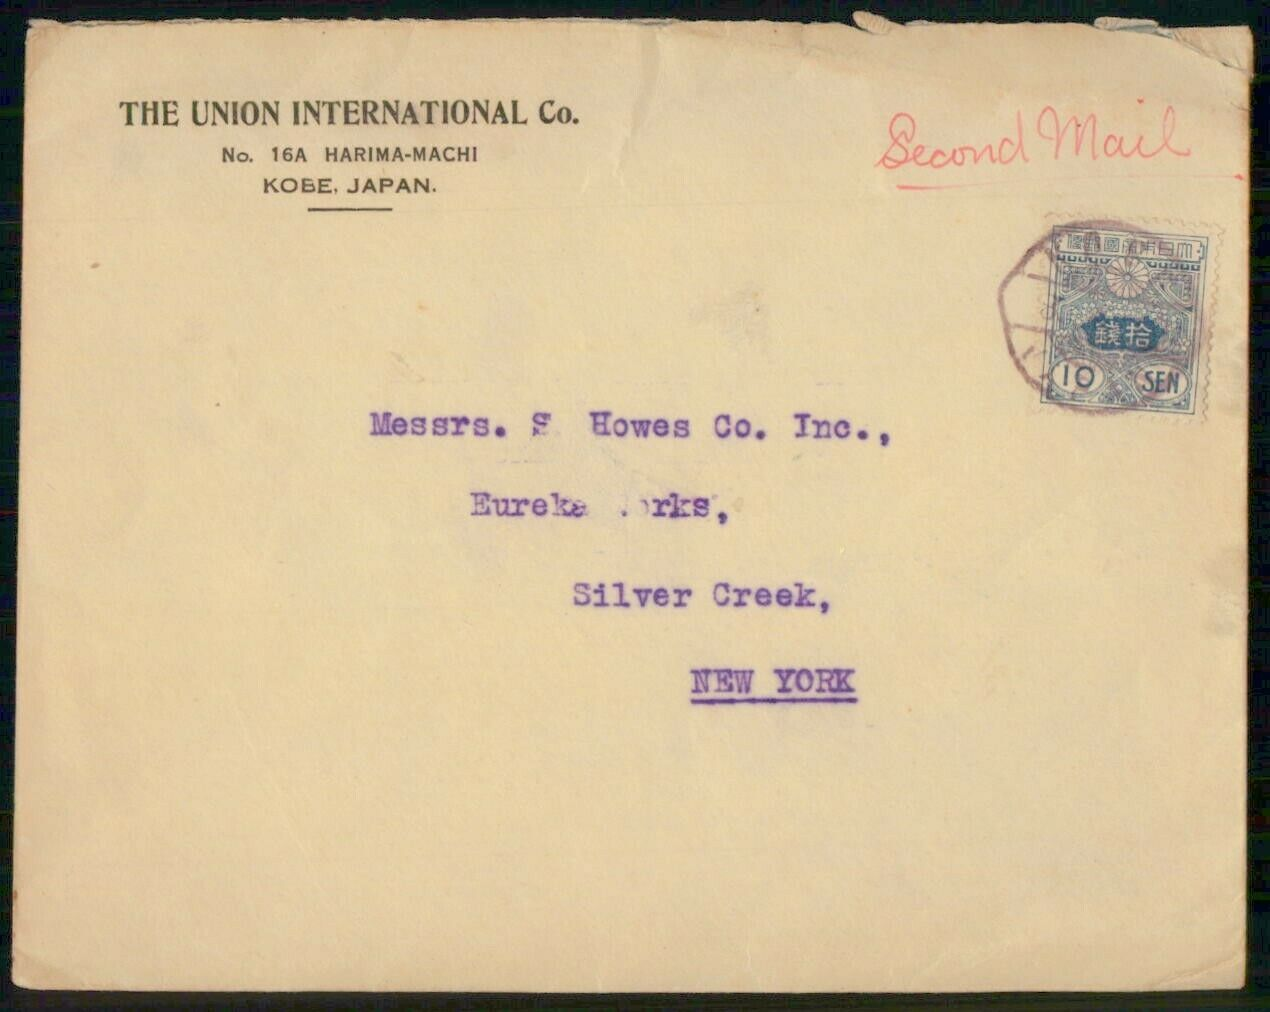 Mayfairstamps Japan Union Internatl S Howes Inc Cover Wwh 17907 - $1.54